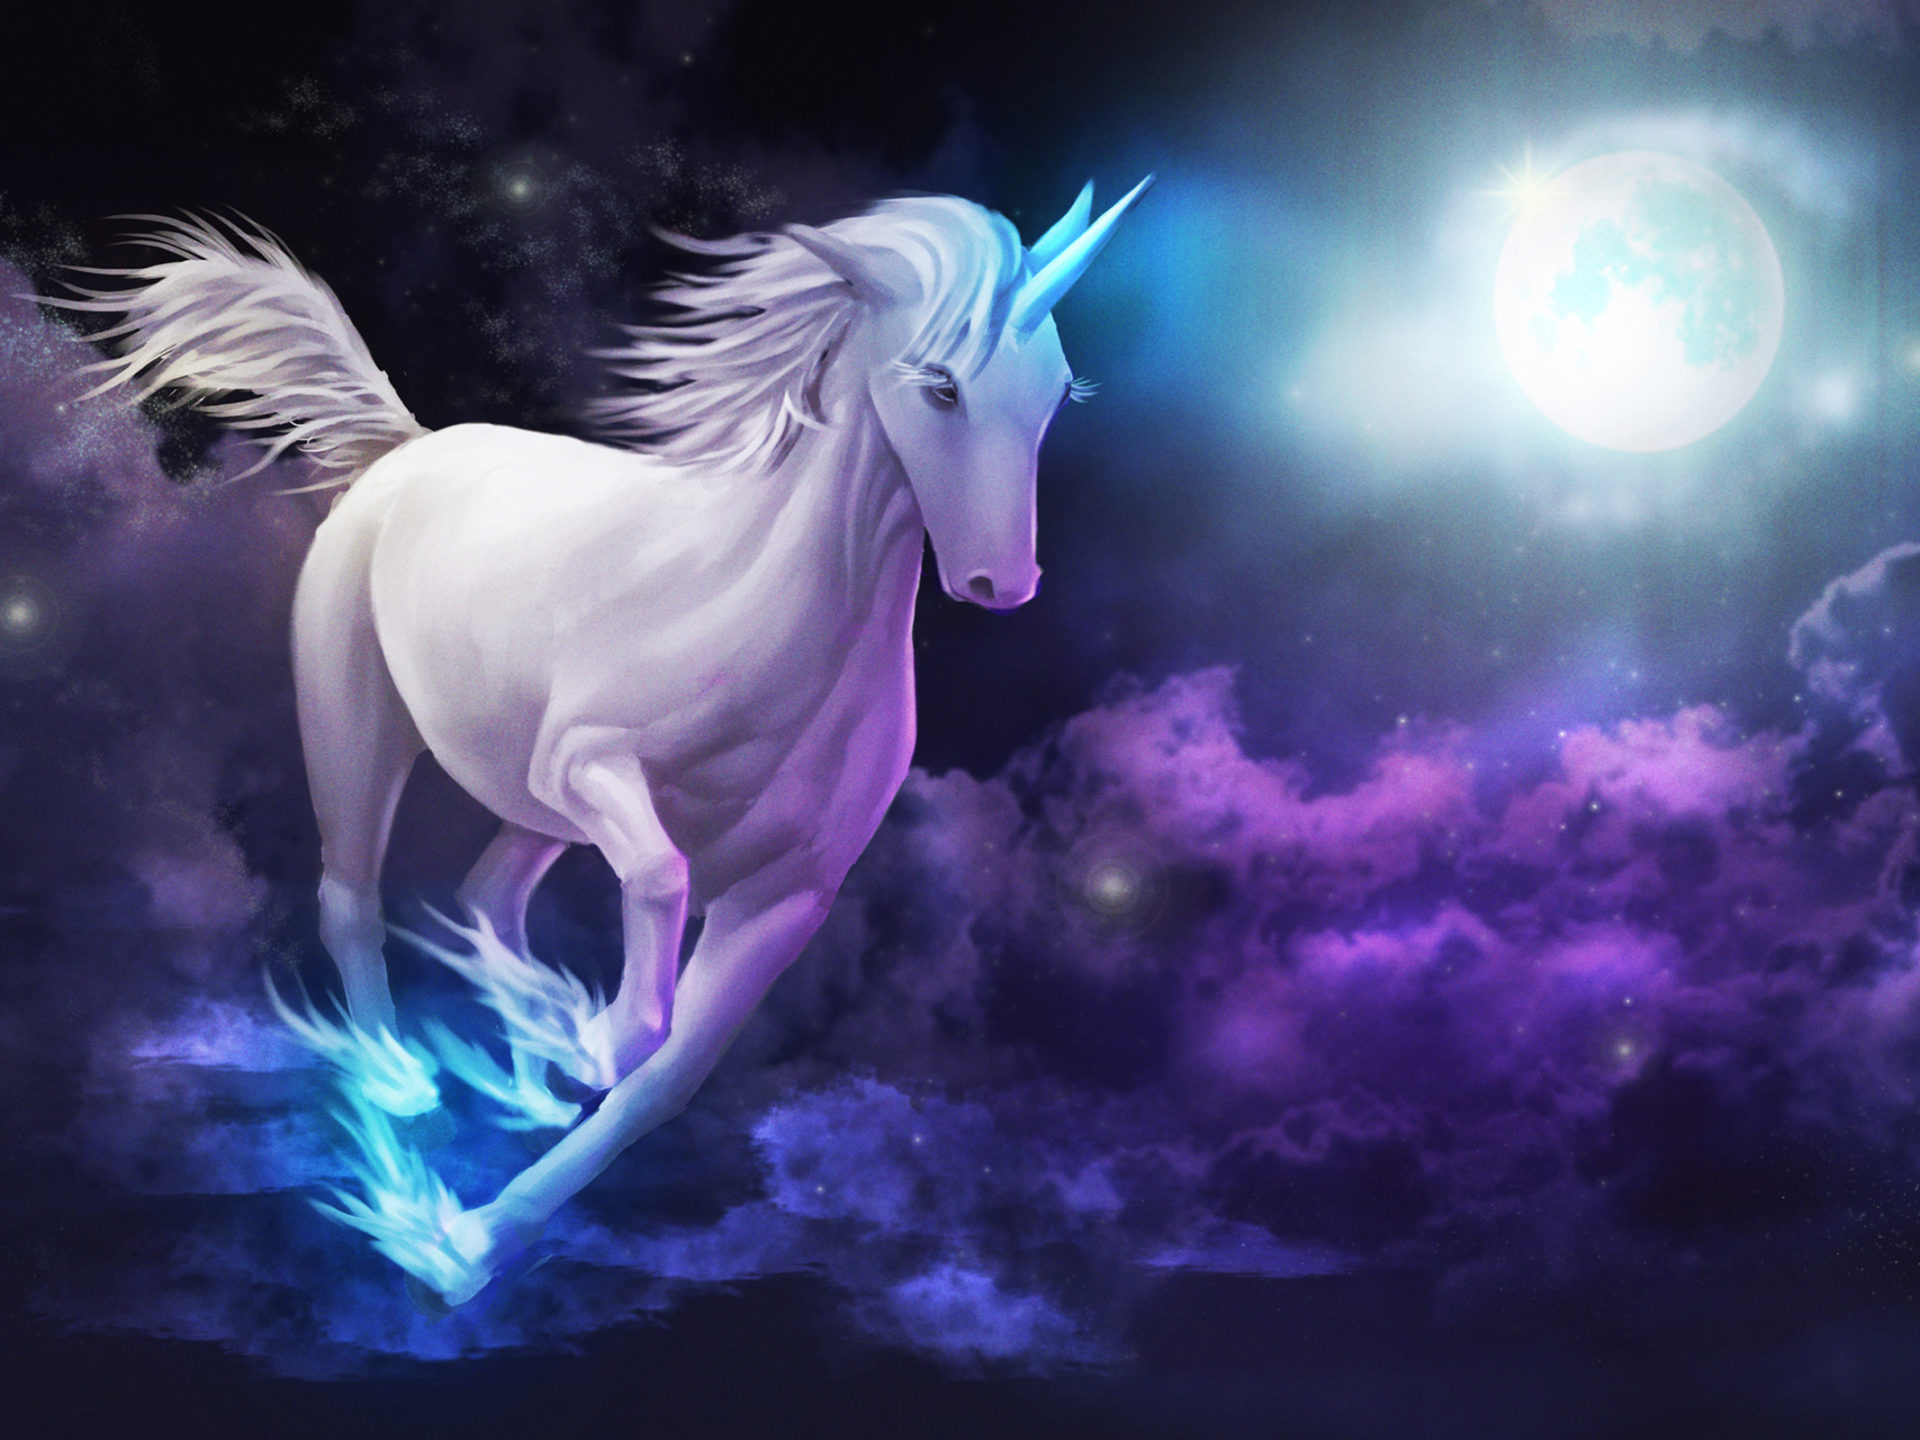 How To Get 3d Wallpaper Iphone Unicorn Galloping Sky Clouds Full Moon Desktop Wallpaper